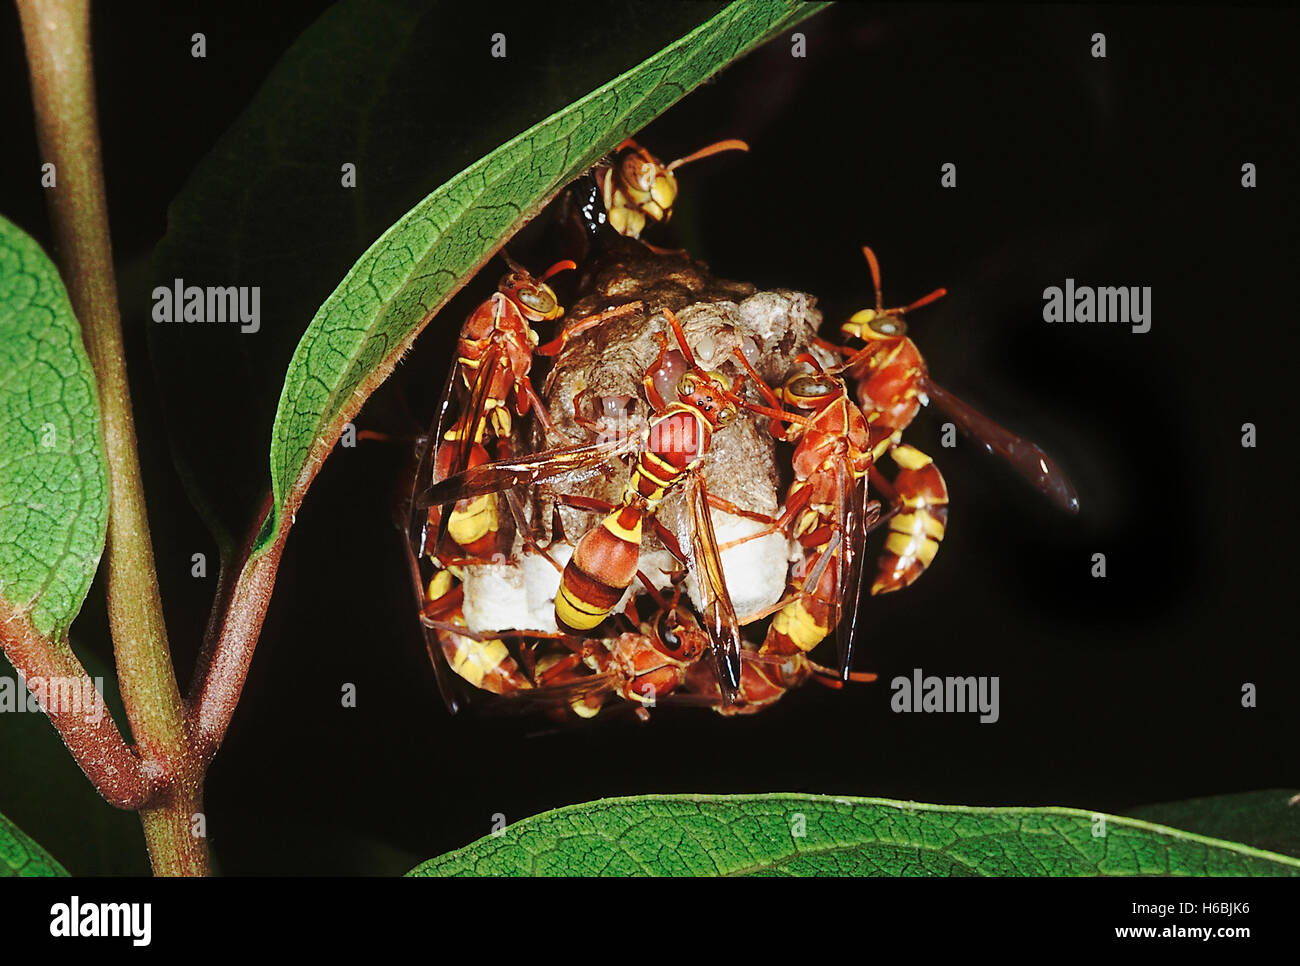 Hornets on nest. Family: Arthropod. Hornets are social insects which live together in a colony. The nest is made - Stock Image